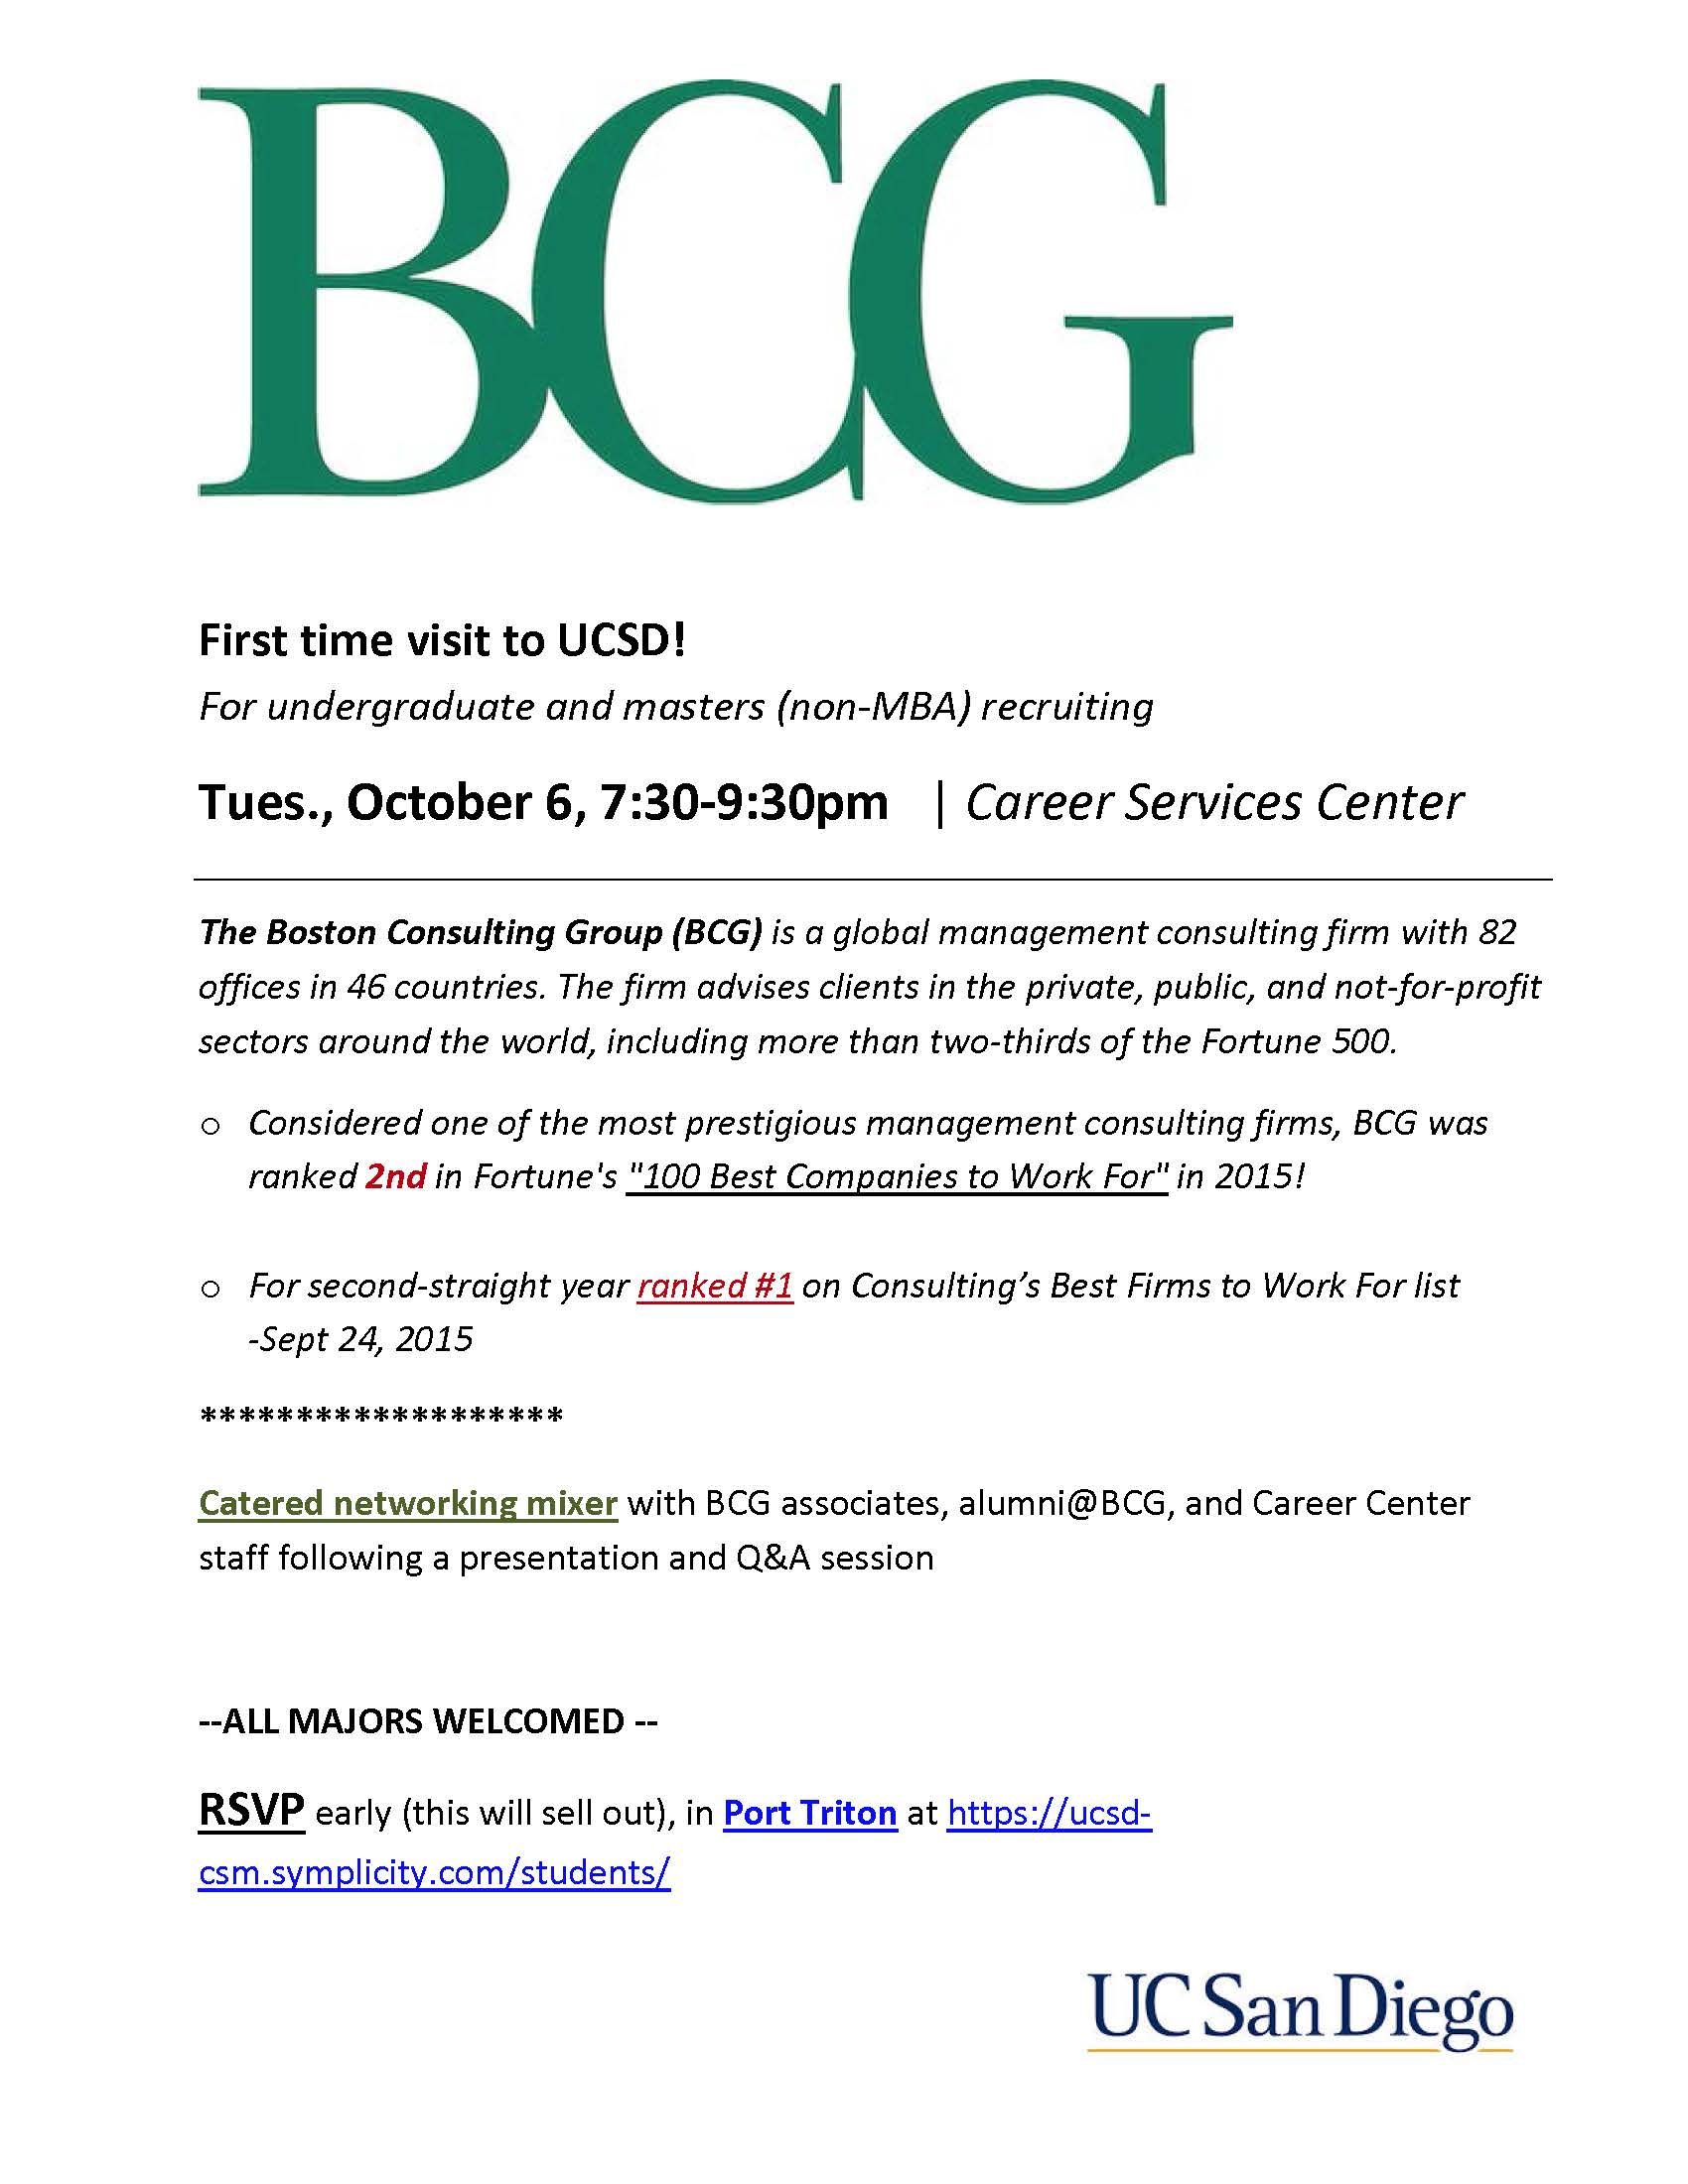 Cover Letter Boston Consulting Group